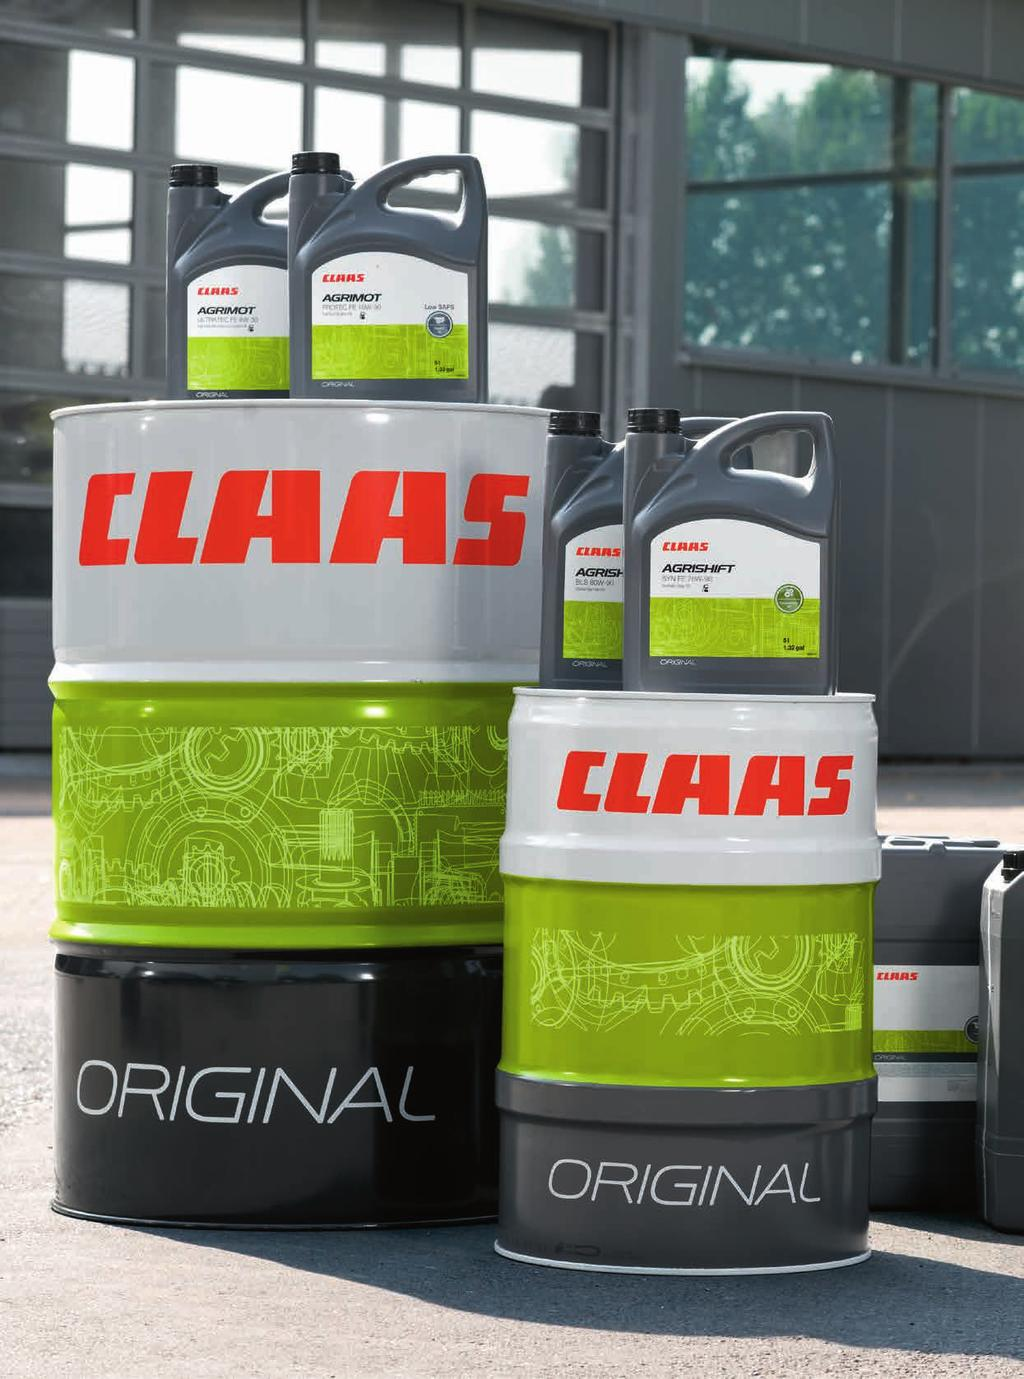 Engine oils. With their perfectly balanced formulation and additives, CLAAS AGRIMOT engine oils are optimised for the engine at the heart of every CLAAS machine.